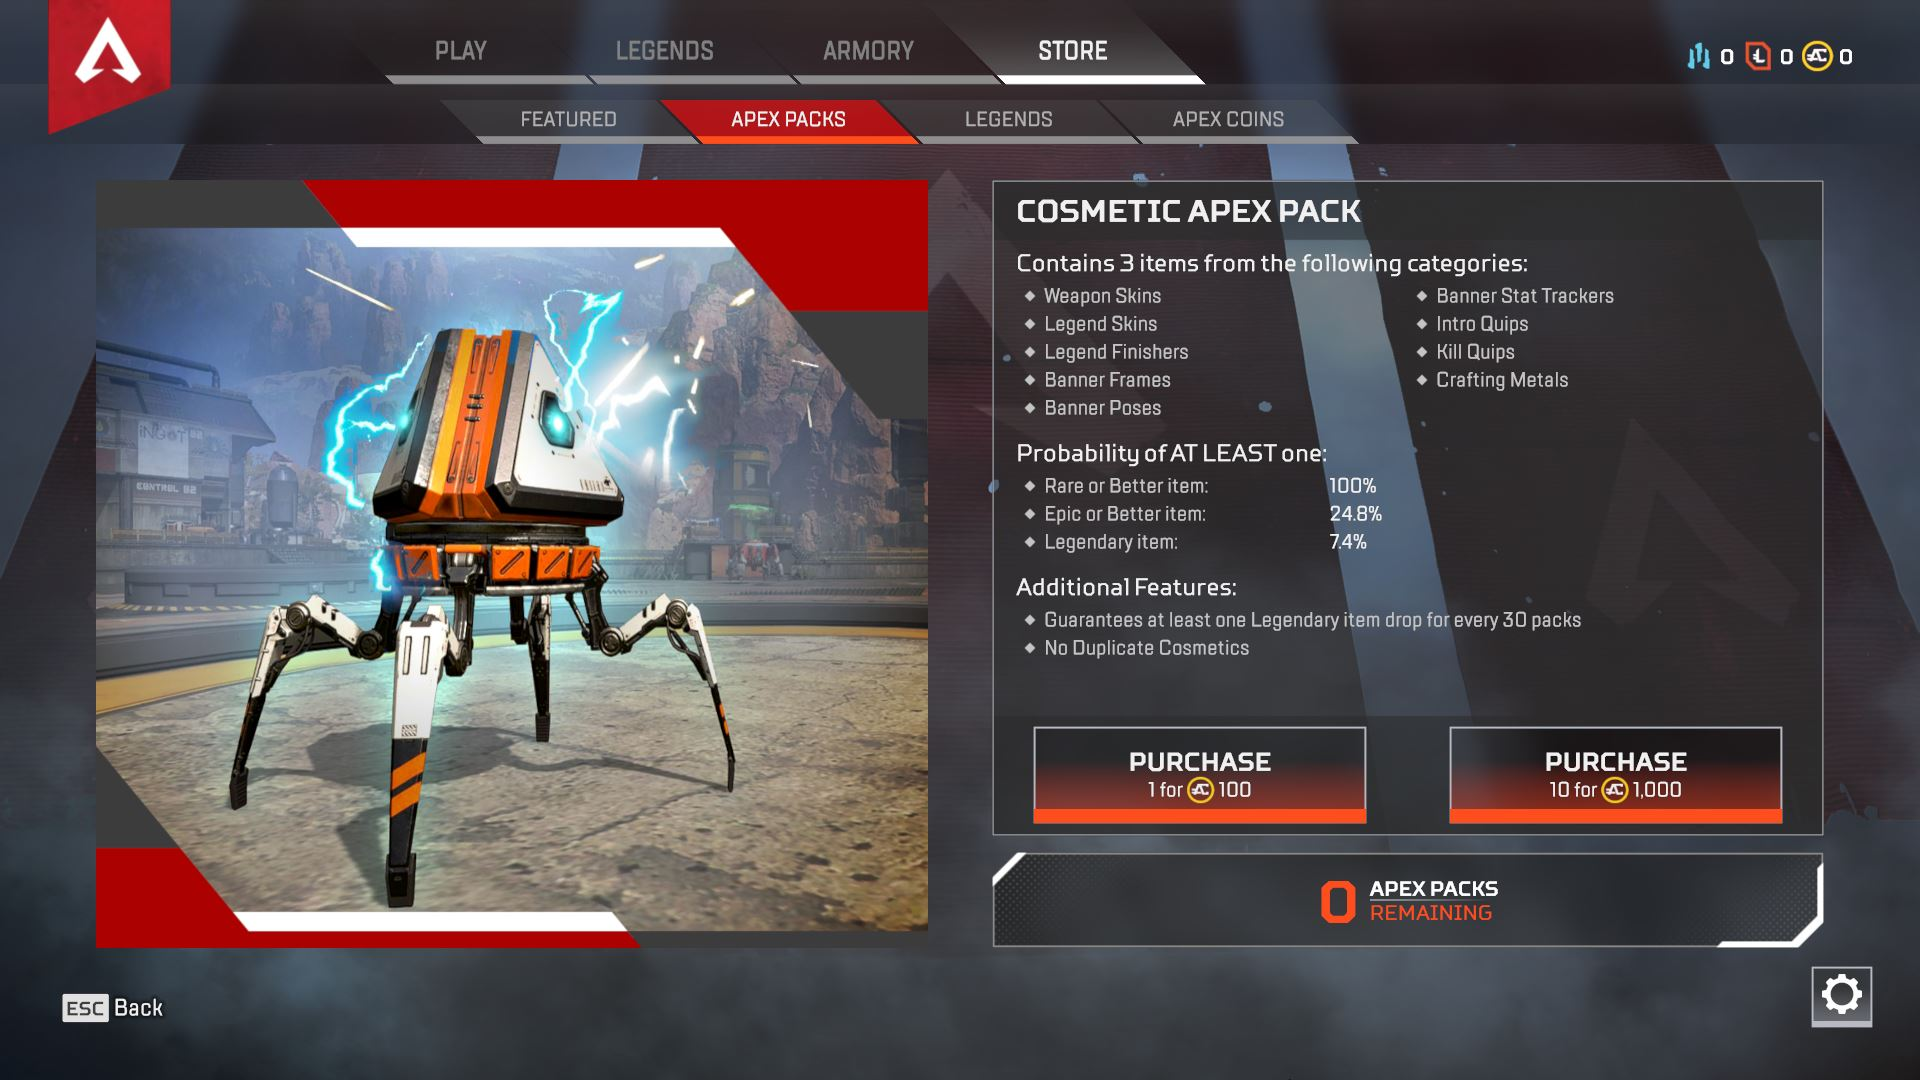 You can earn Crafting Metals by leveling up and opening Apex Packs in Apex Legends.